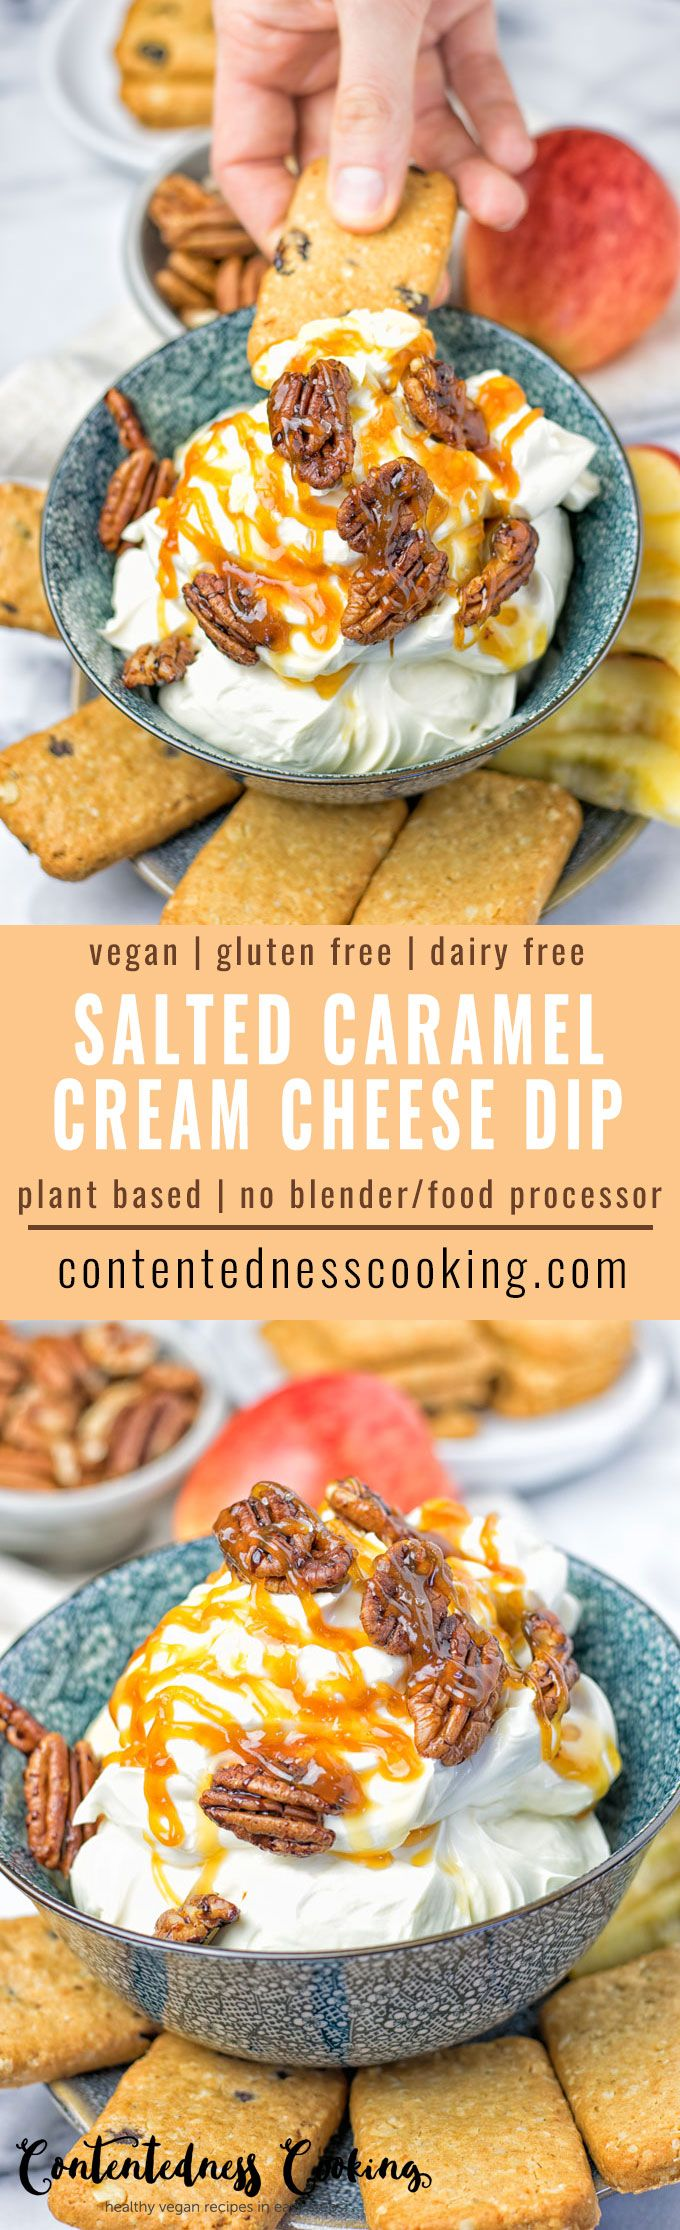 This Salted Caramel Cream Cheese Dip is entirely vegan, gluten free, made without any blender or food processor. It's a must make for potlucks, gatherings or any other holiday occasion. Enjoy them with your favorite cookies, apple slices or with chocolate